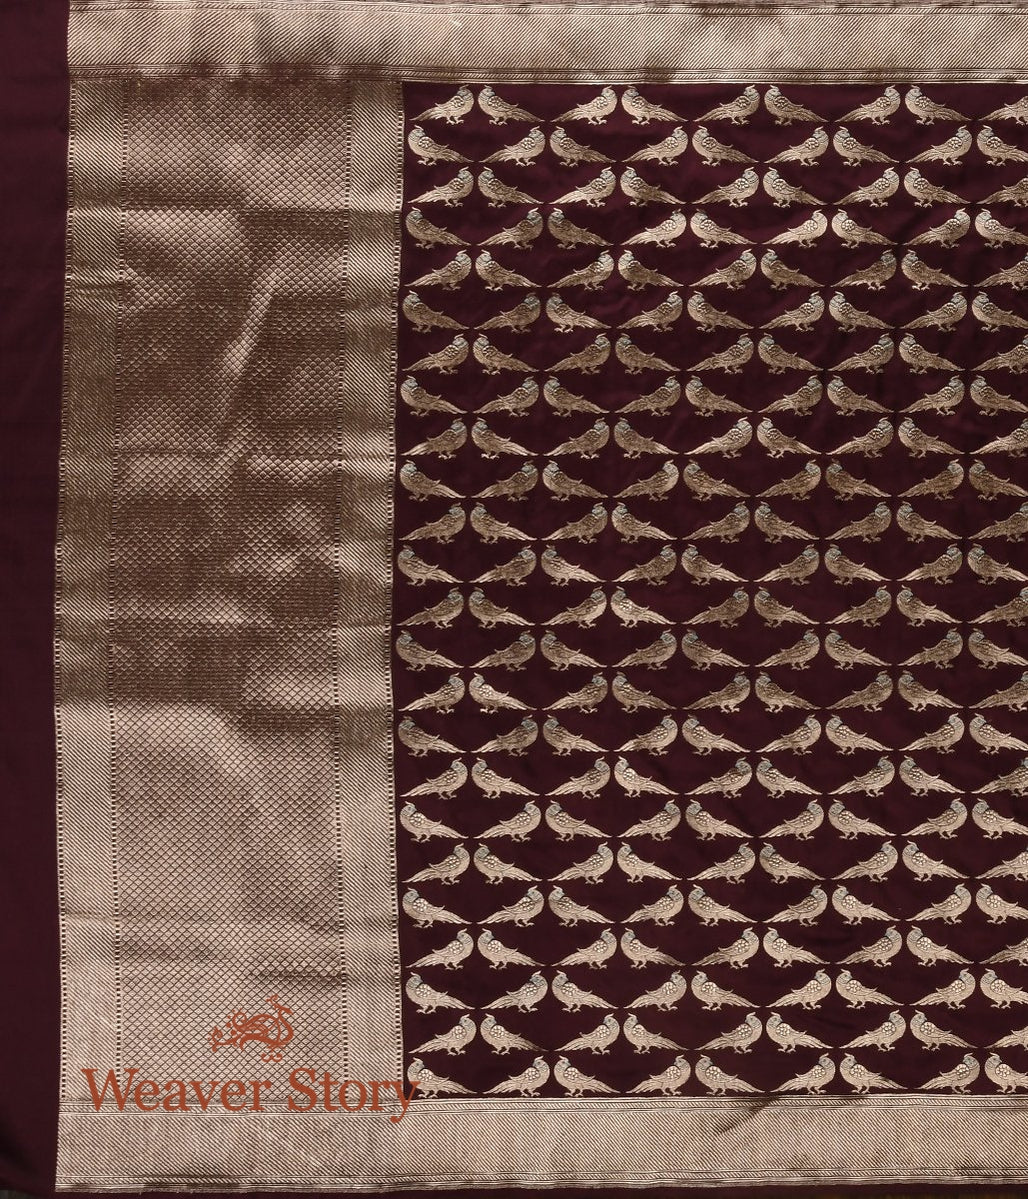 Handwoven Wine Kadhwa Dupatta with Birds